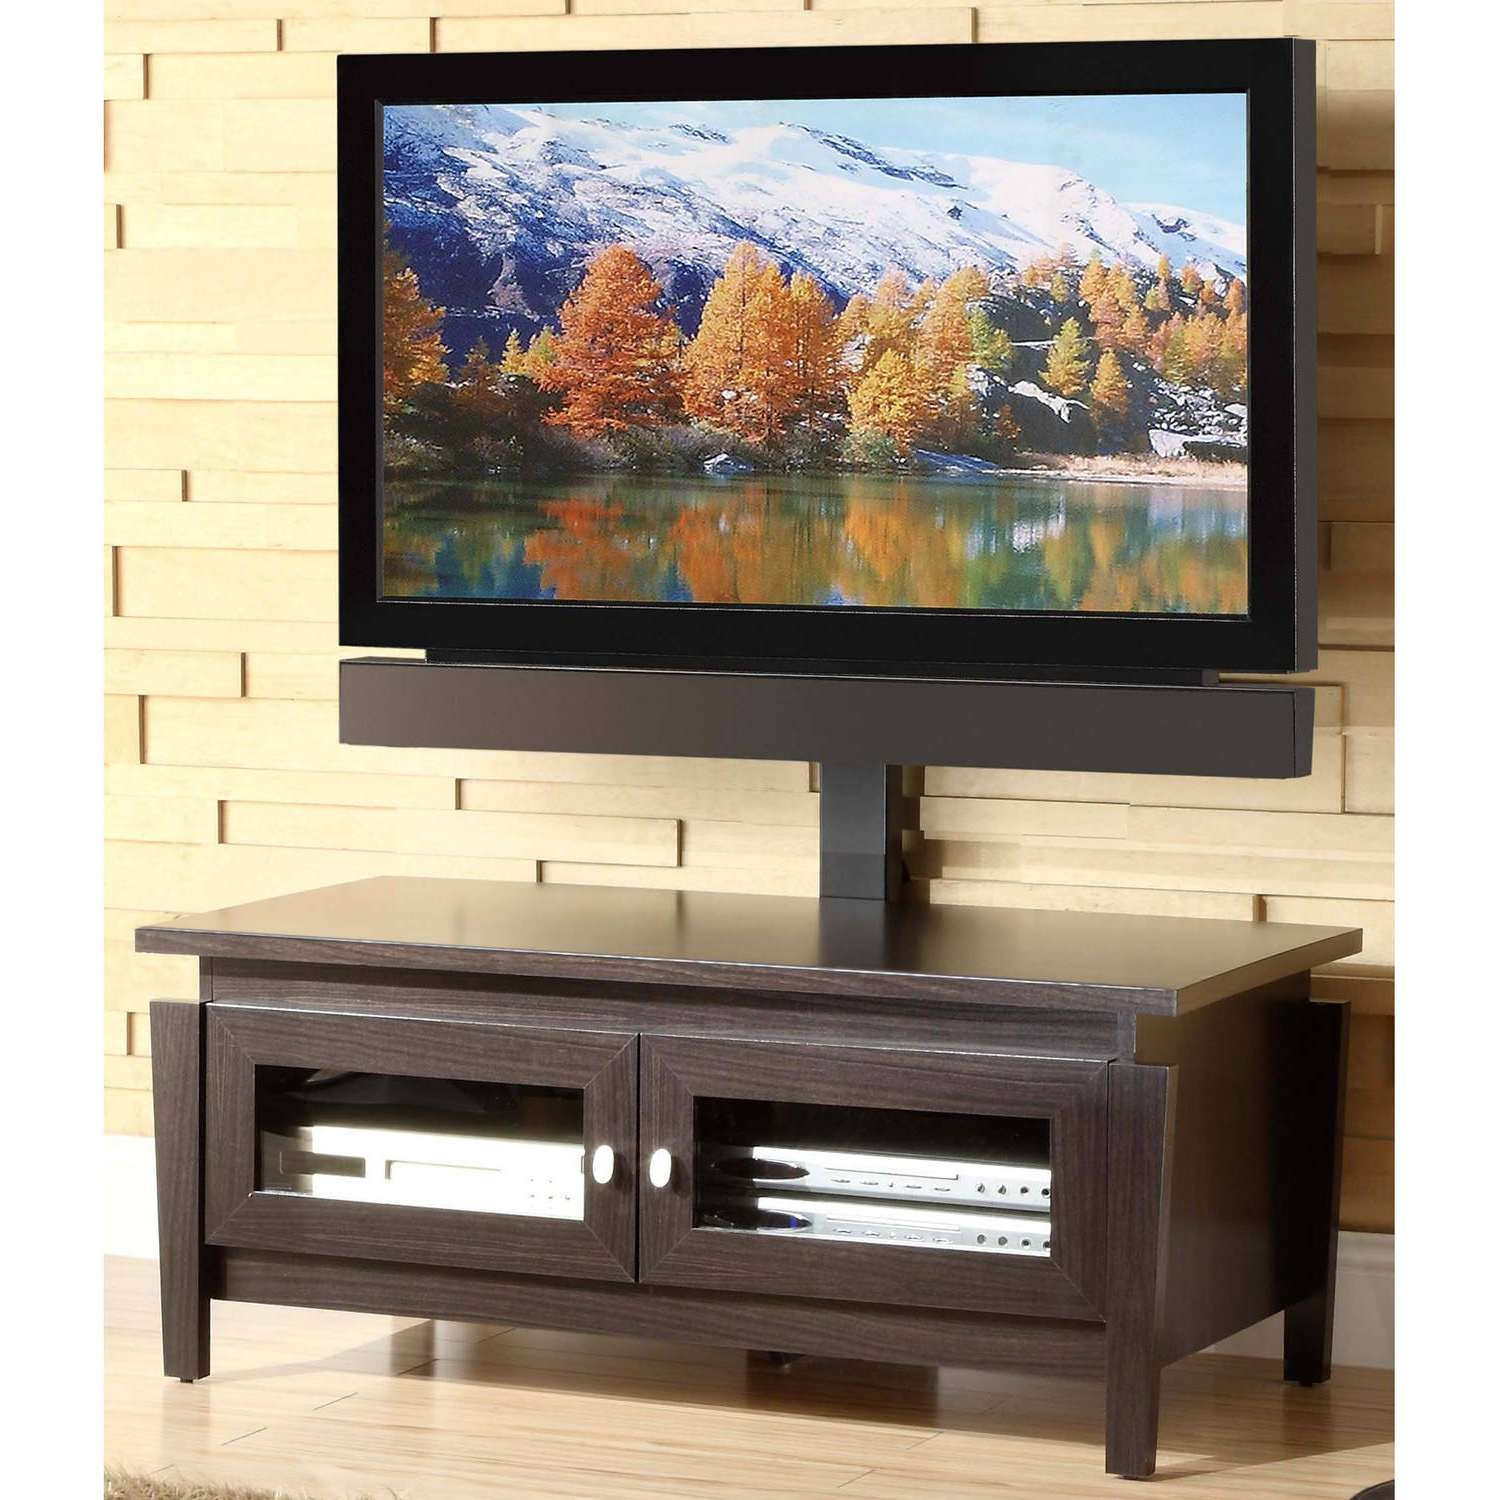 Decorating: Whalen Flat Panel Tv Console | Whalen Swivel Tv Stand Intended For Swivel Tv Stands With Mount (View 3 of 15)